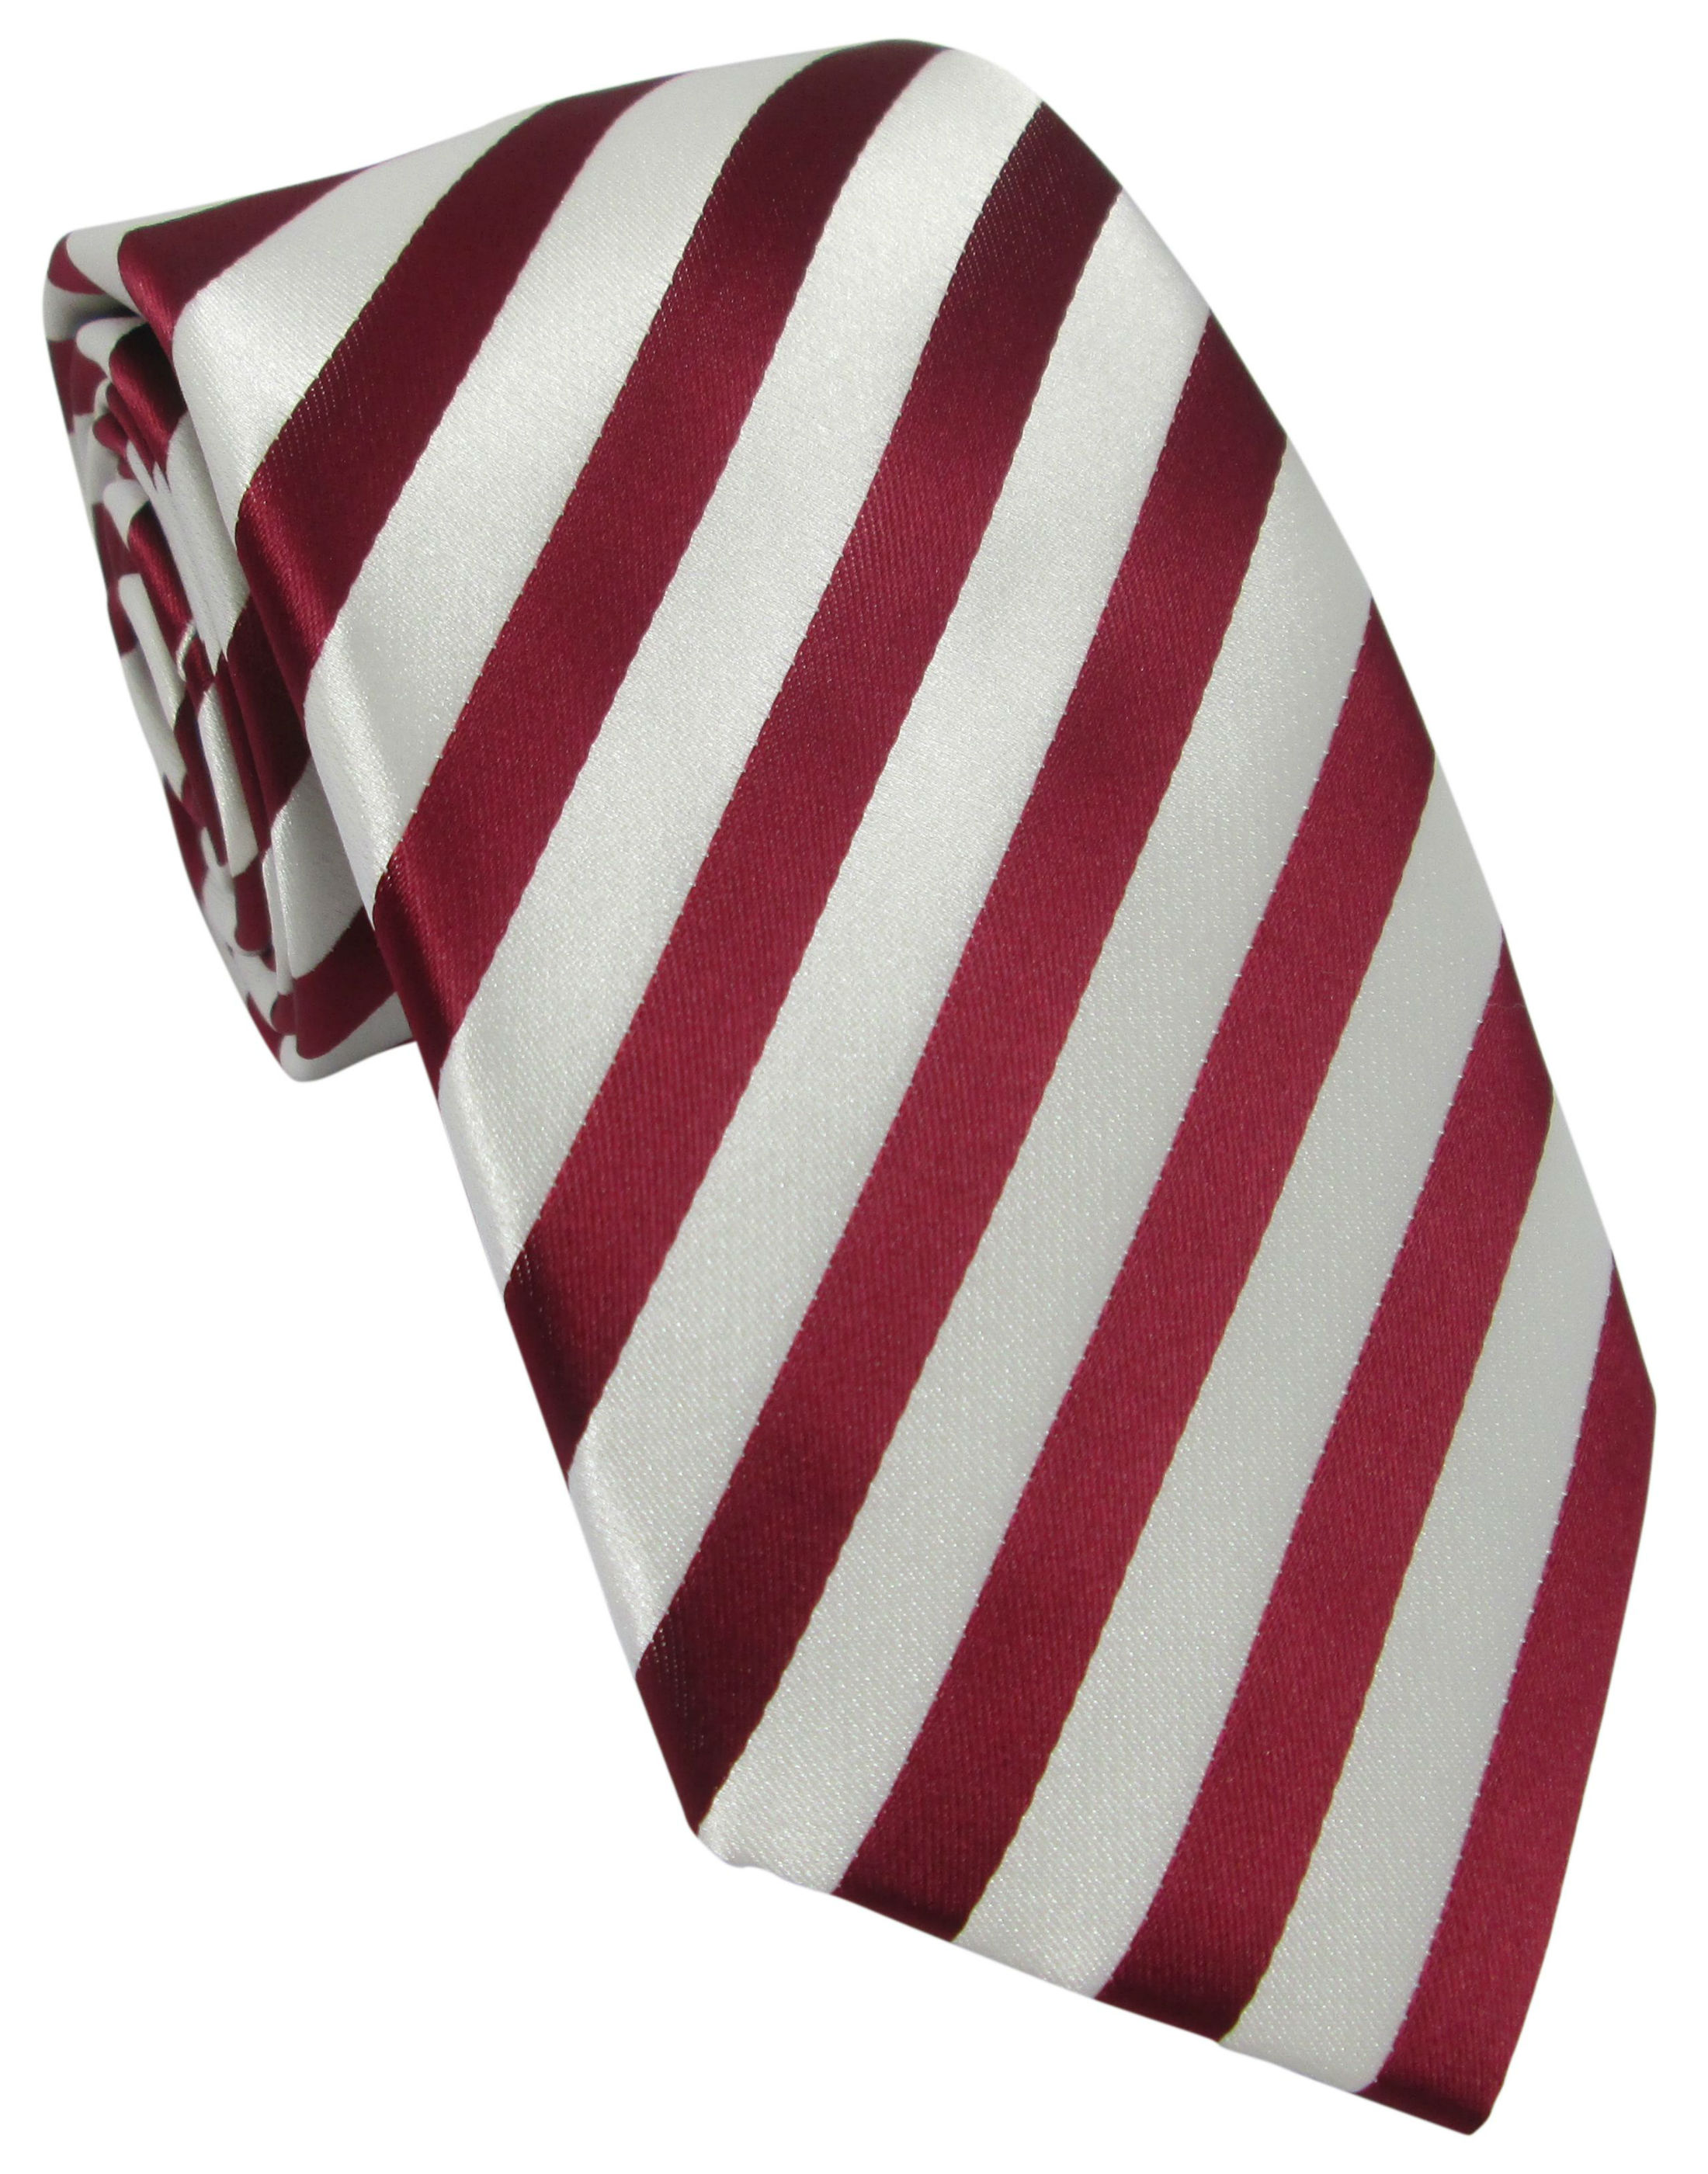 Burnt Red and White Striped Tie